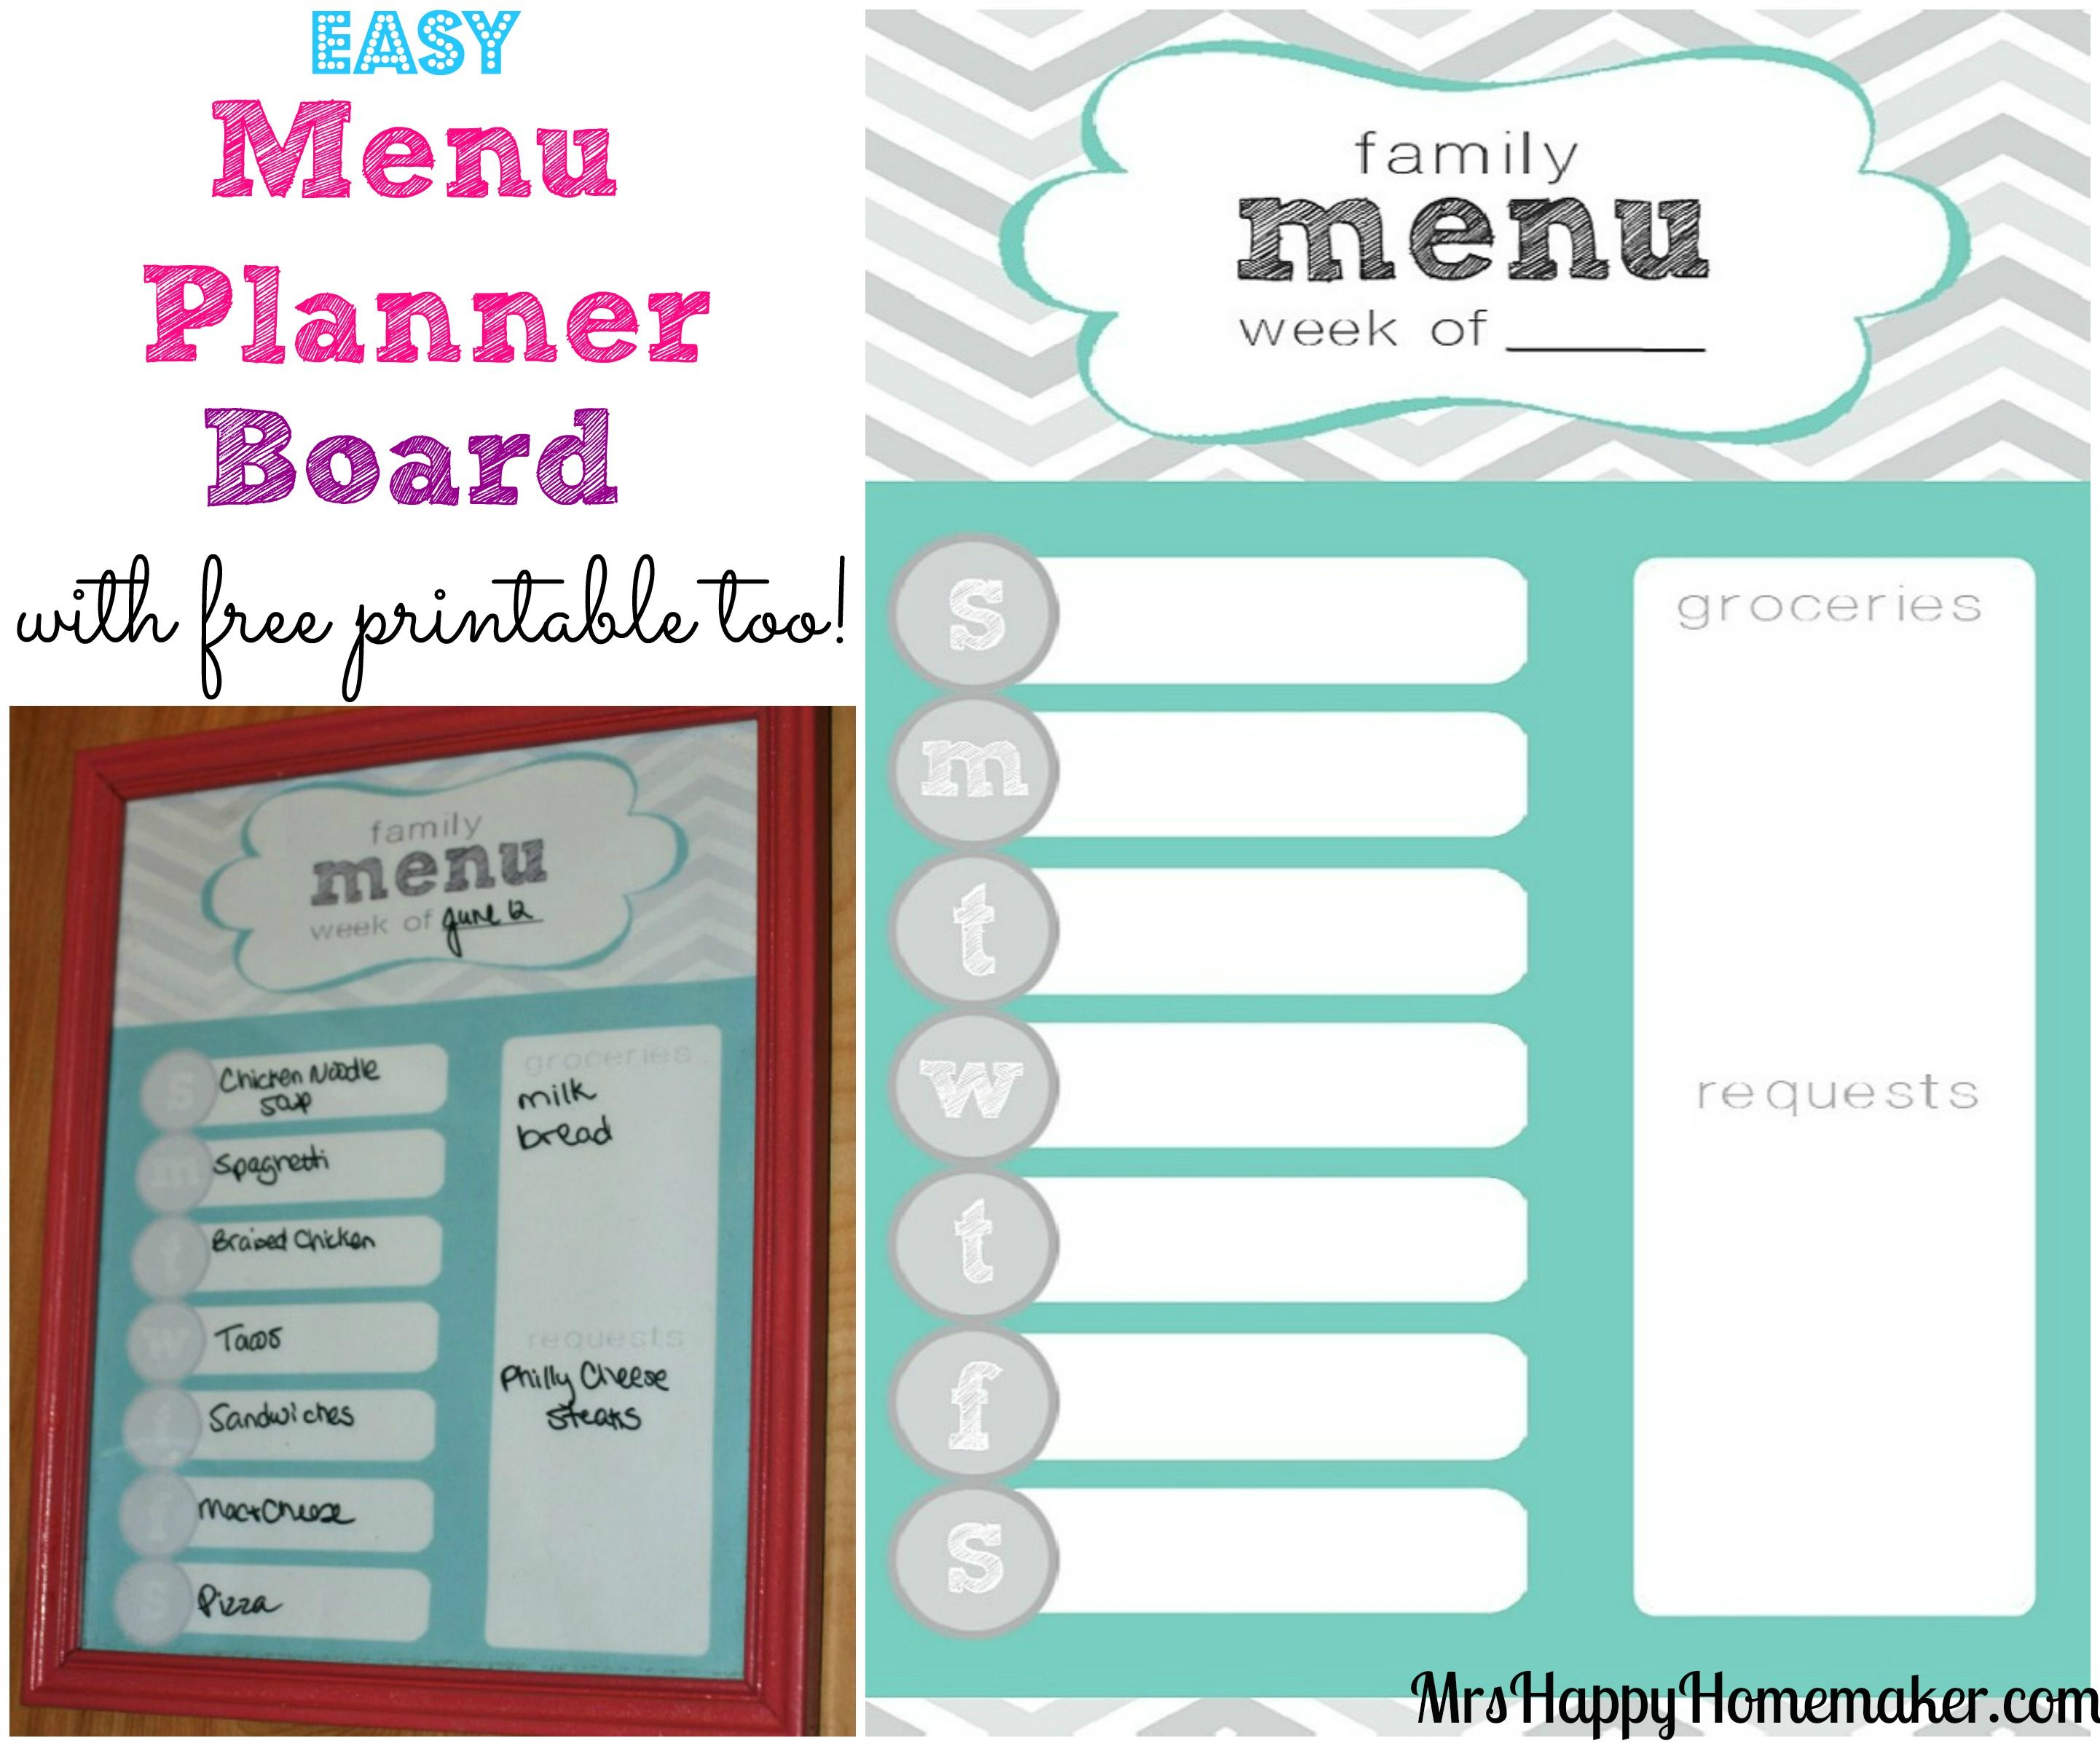 Easy Menu Planner Board - with a free printable! | Homemaking ...